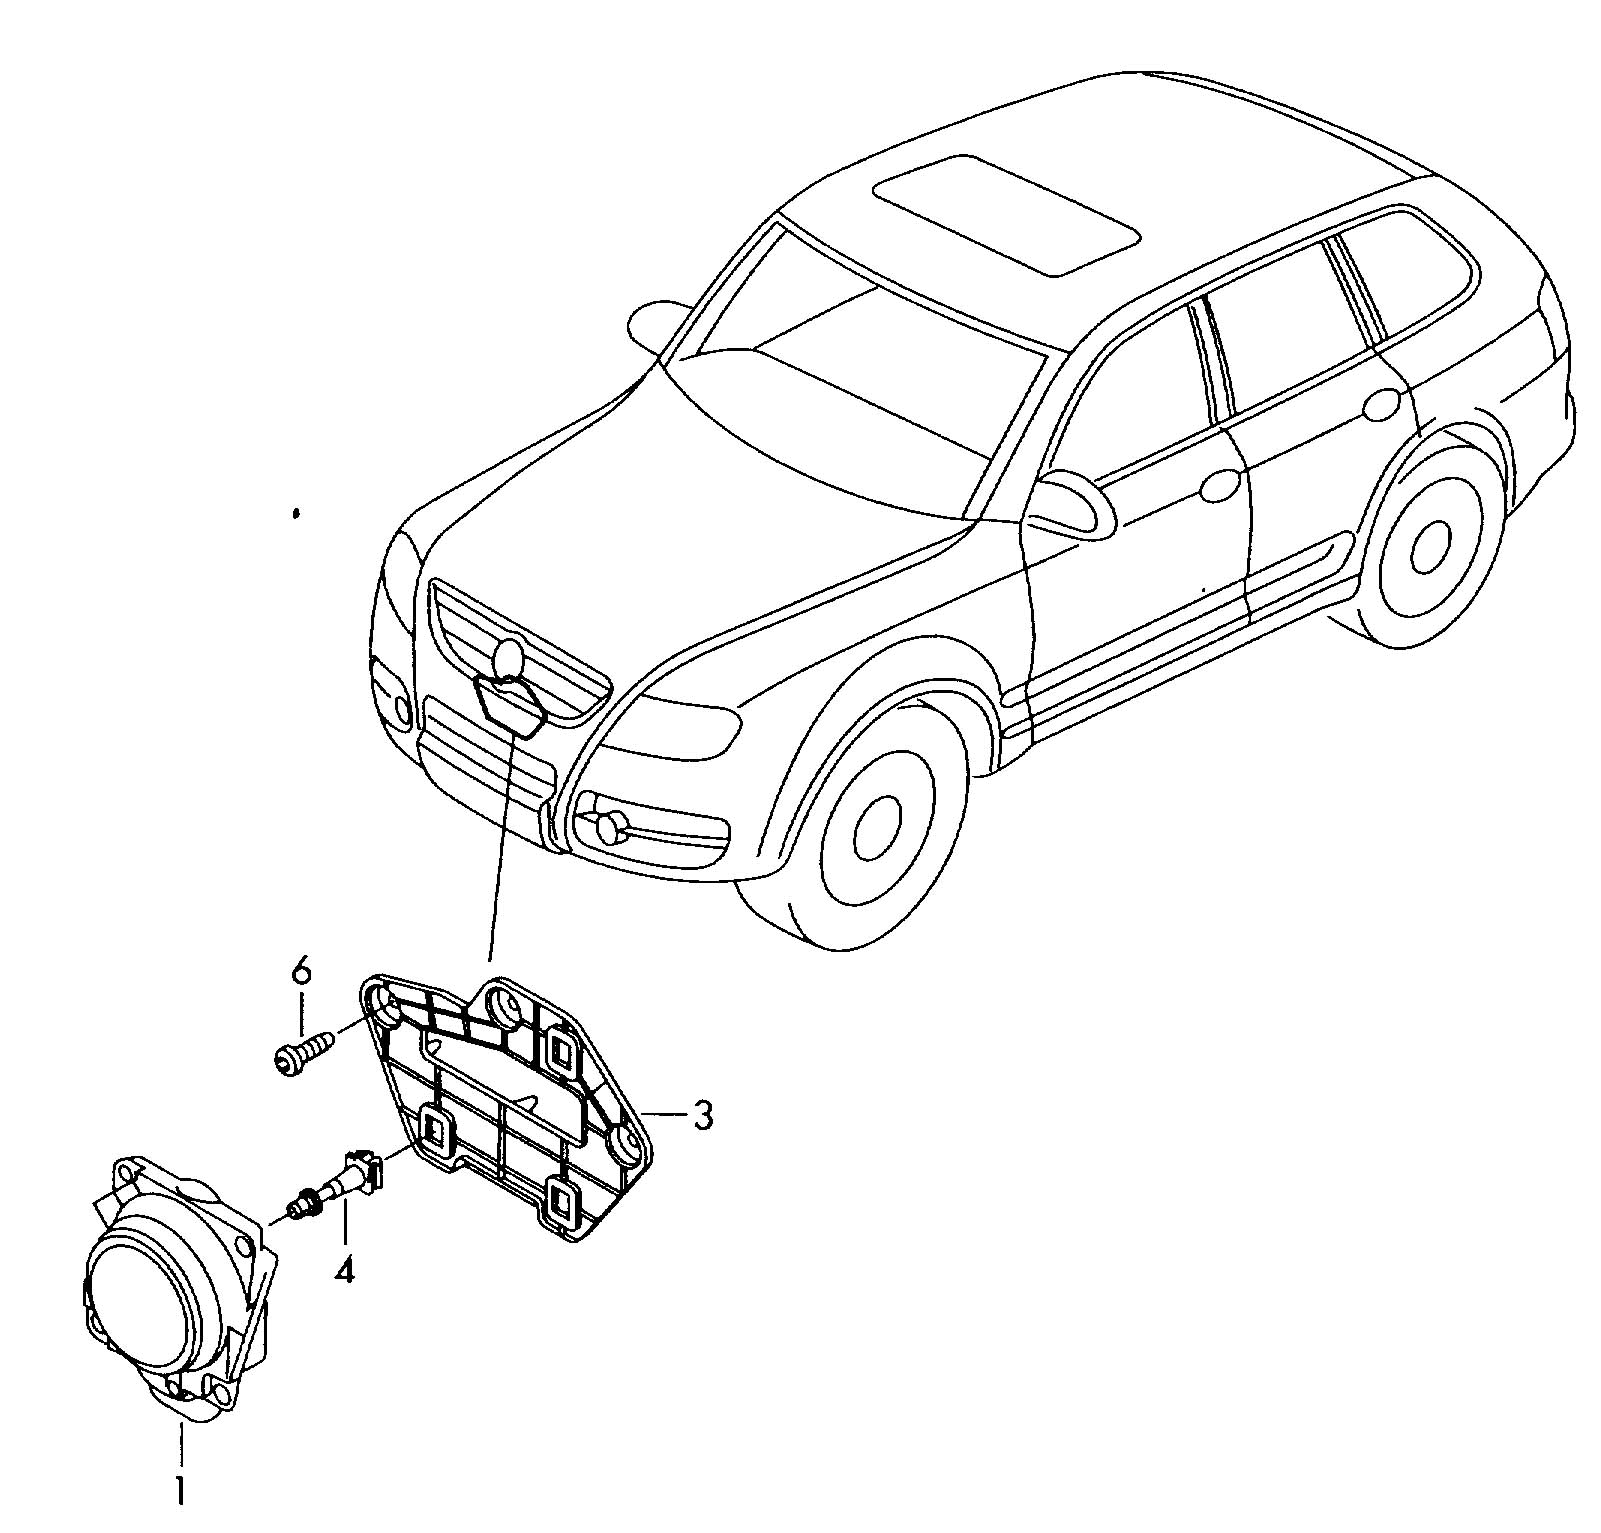 Volkswagen Touareg Control Unit With Software For